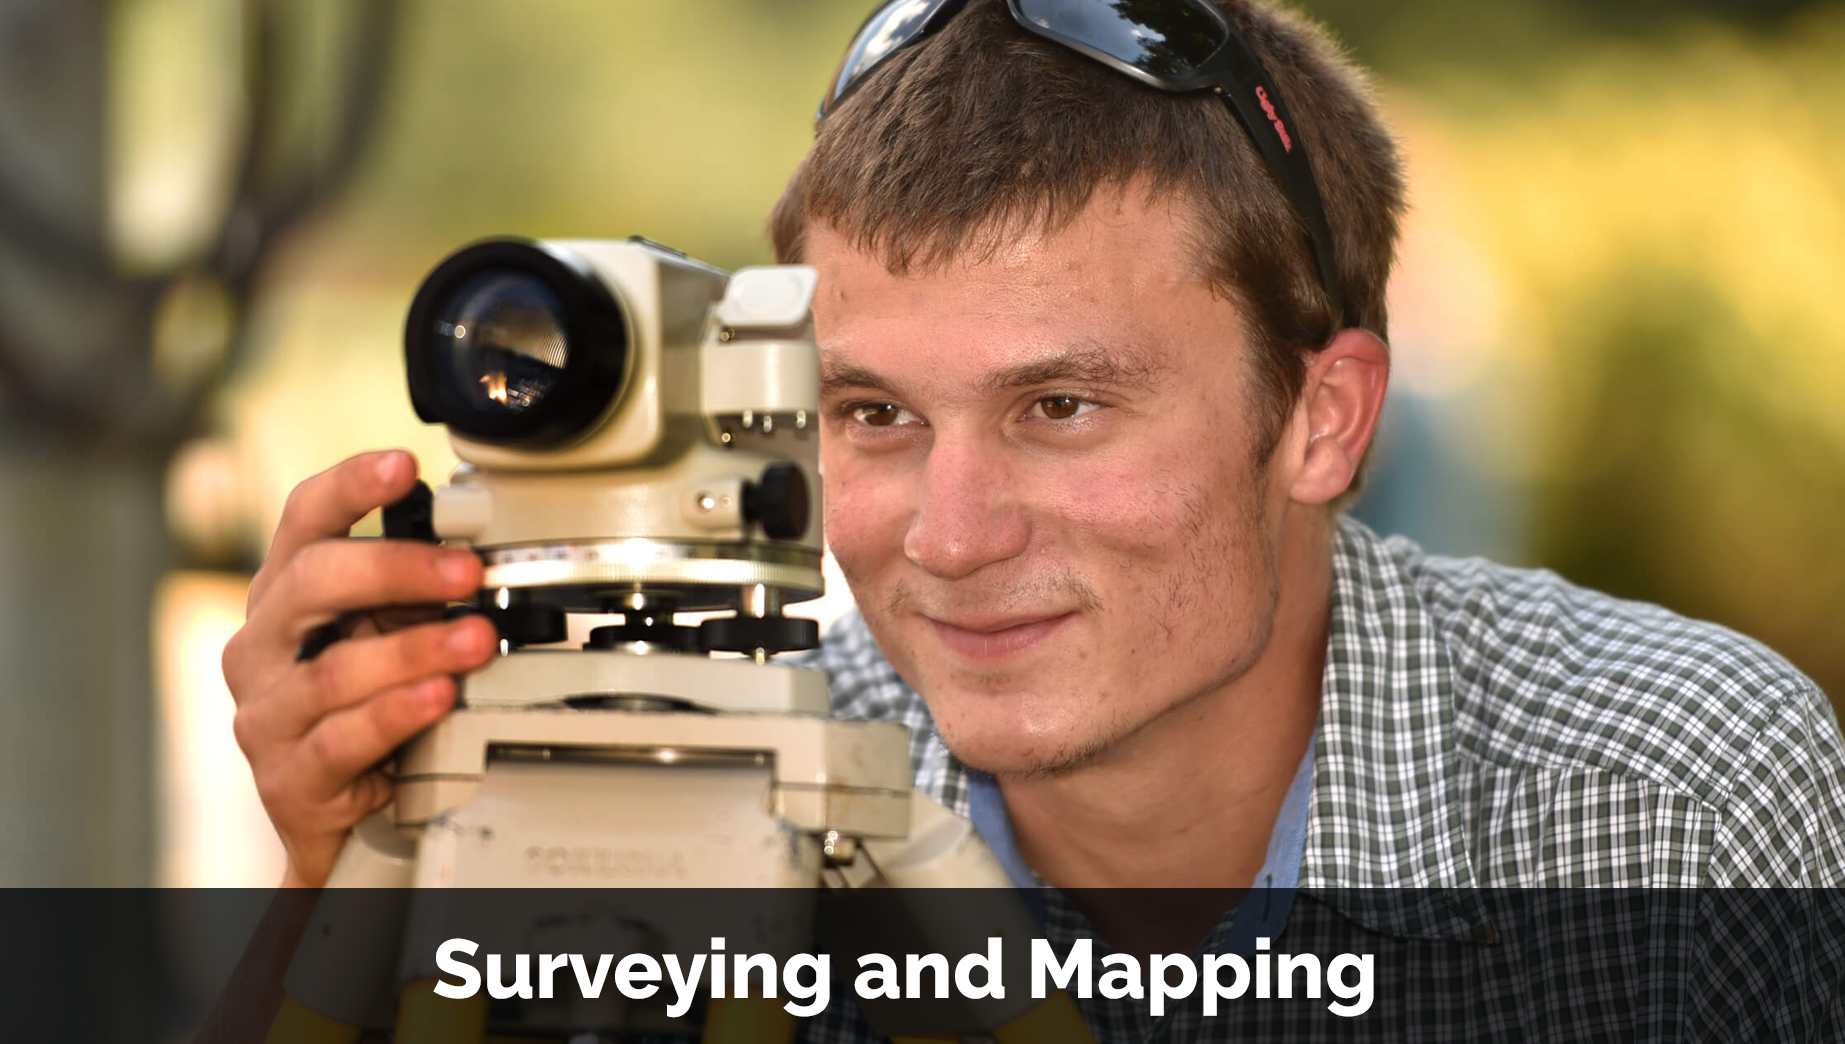 Surveying and Mapping [East Tennessee State University]